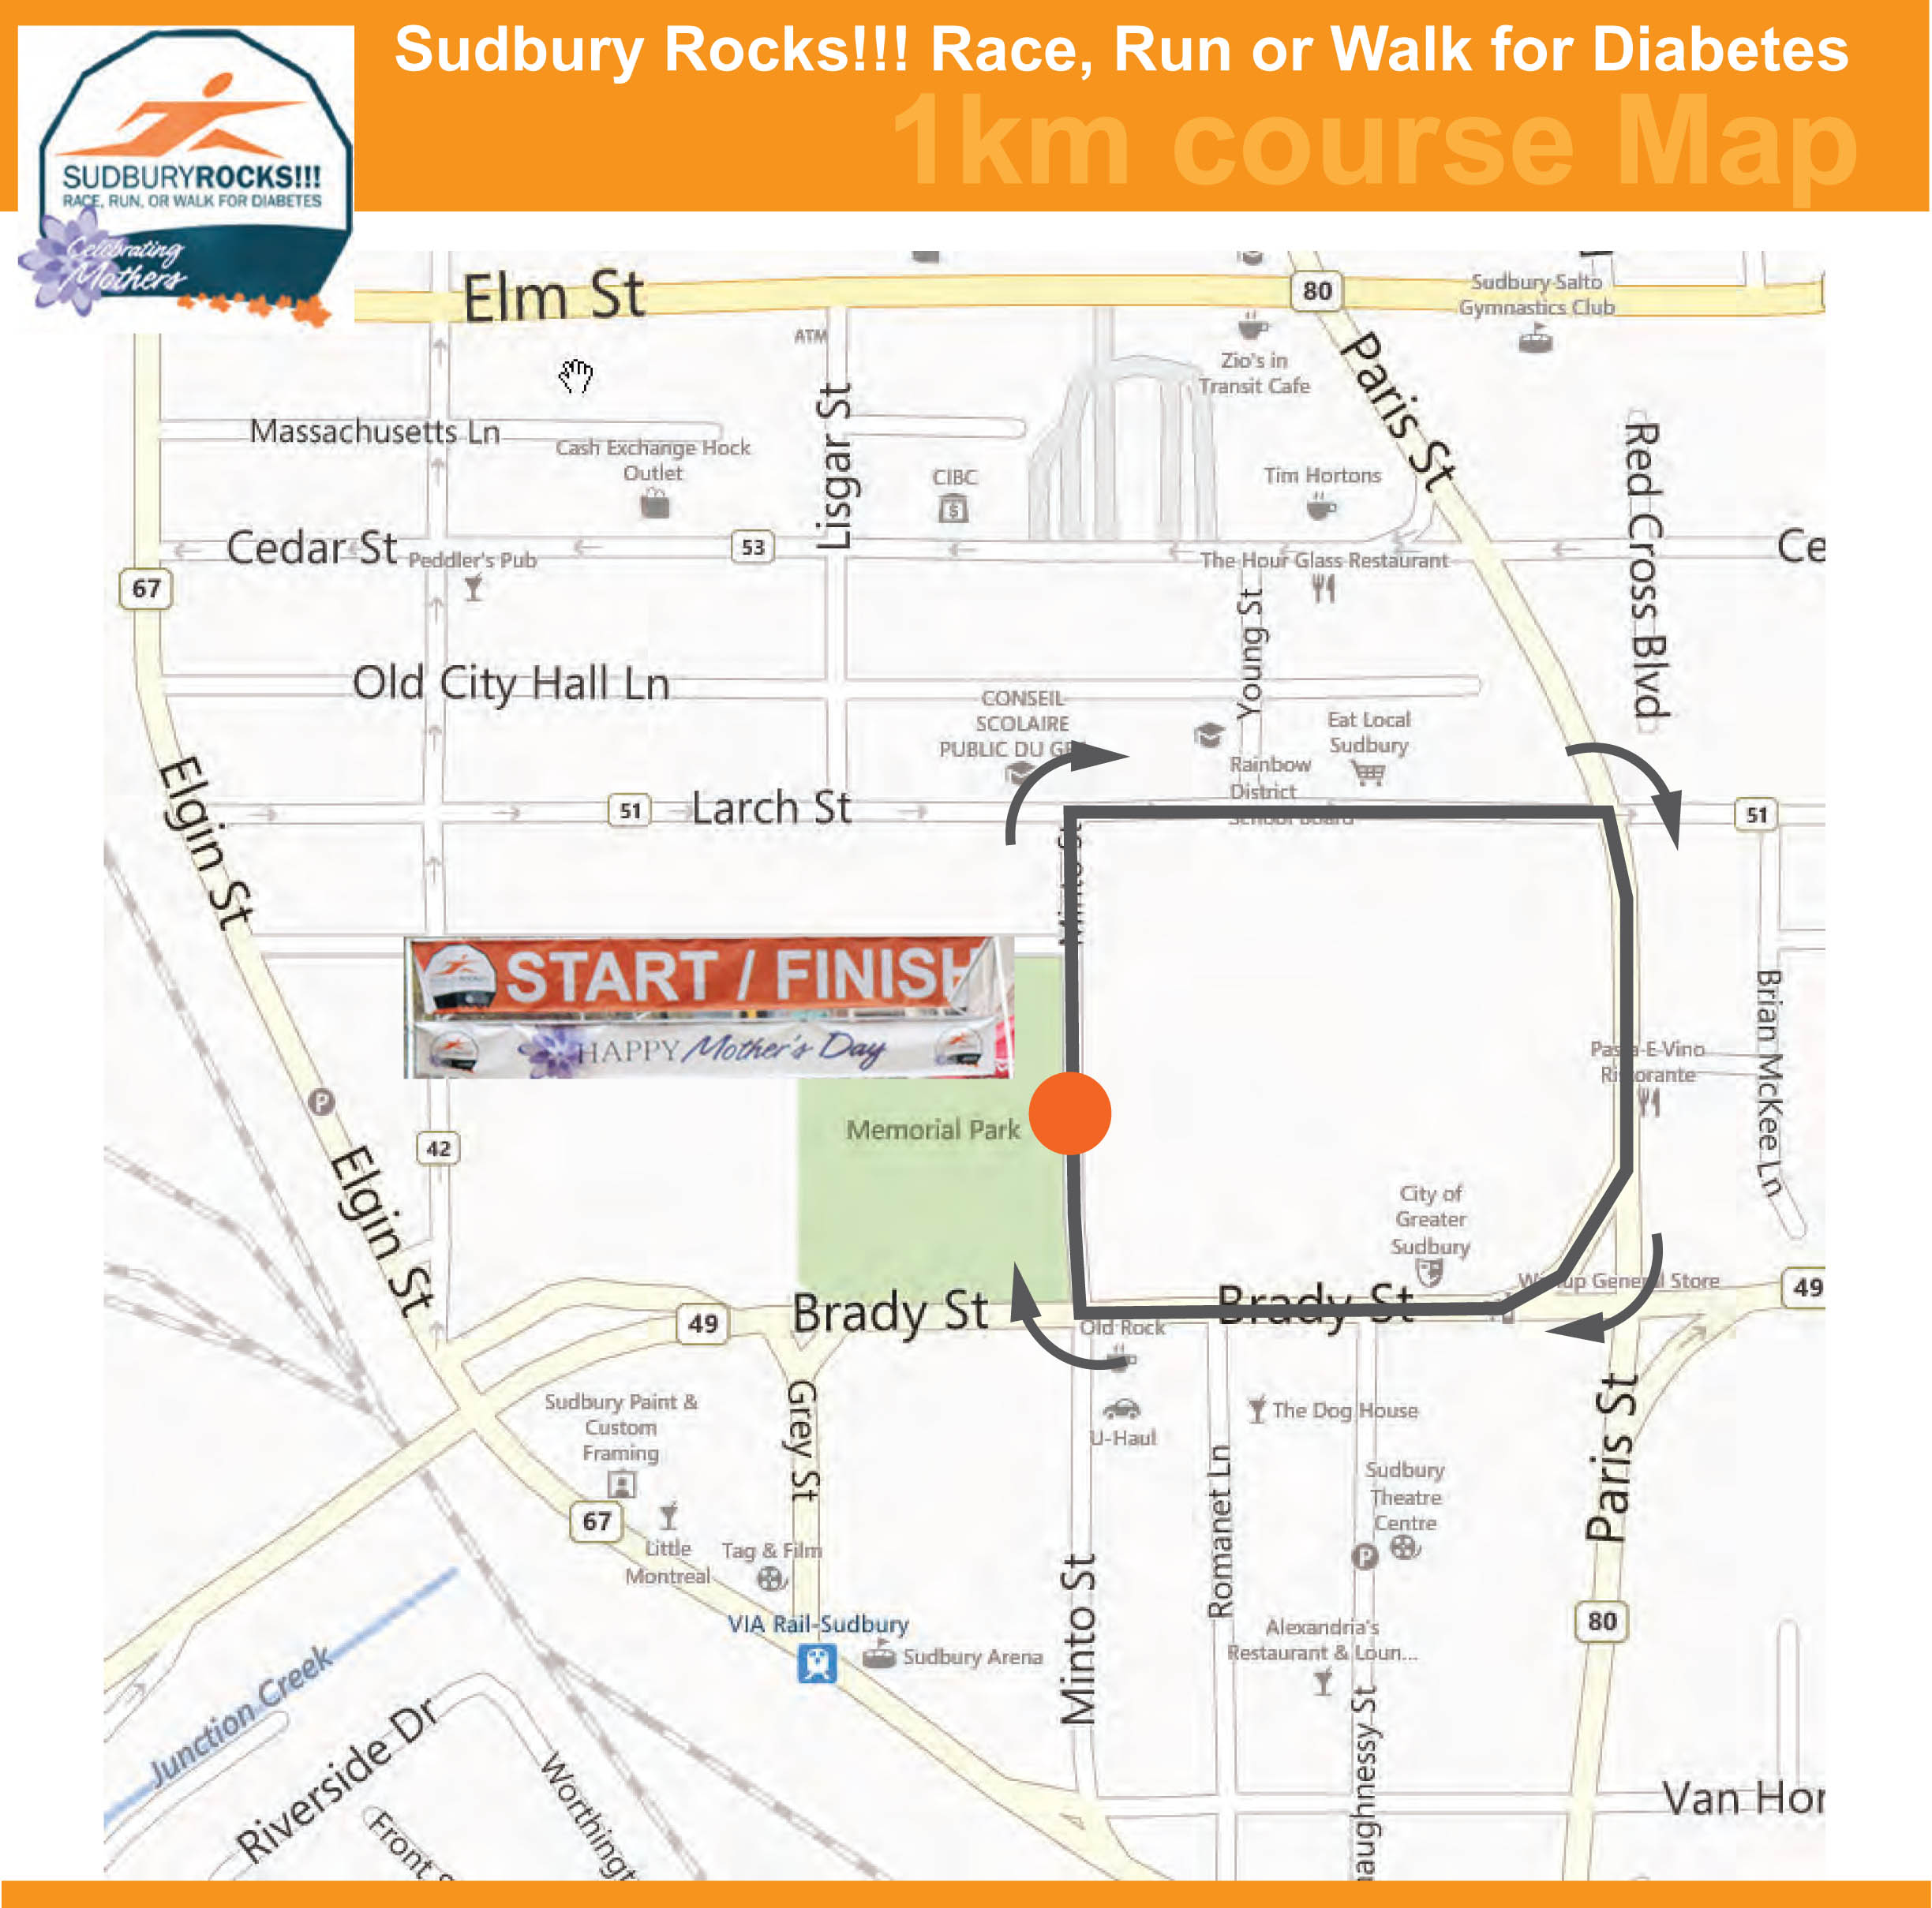 Sudbury Rocks 1km Route